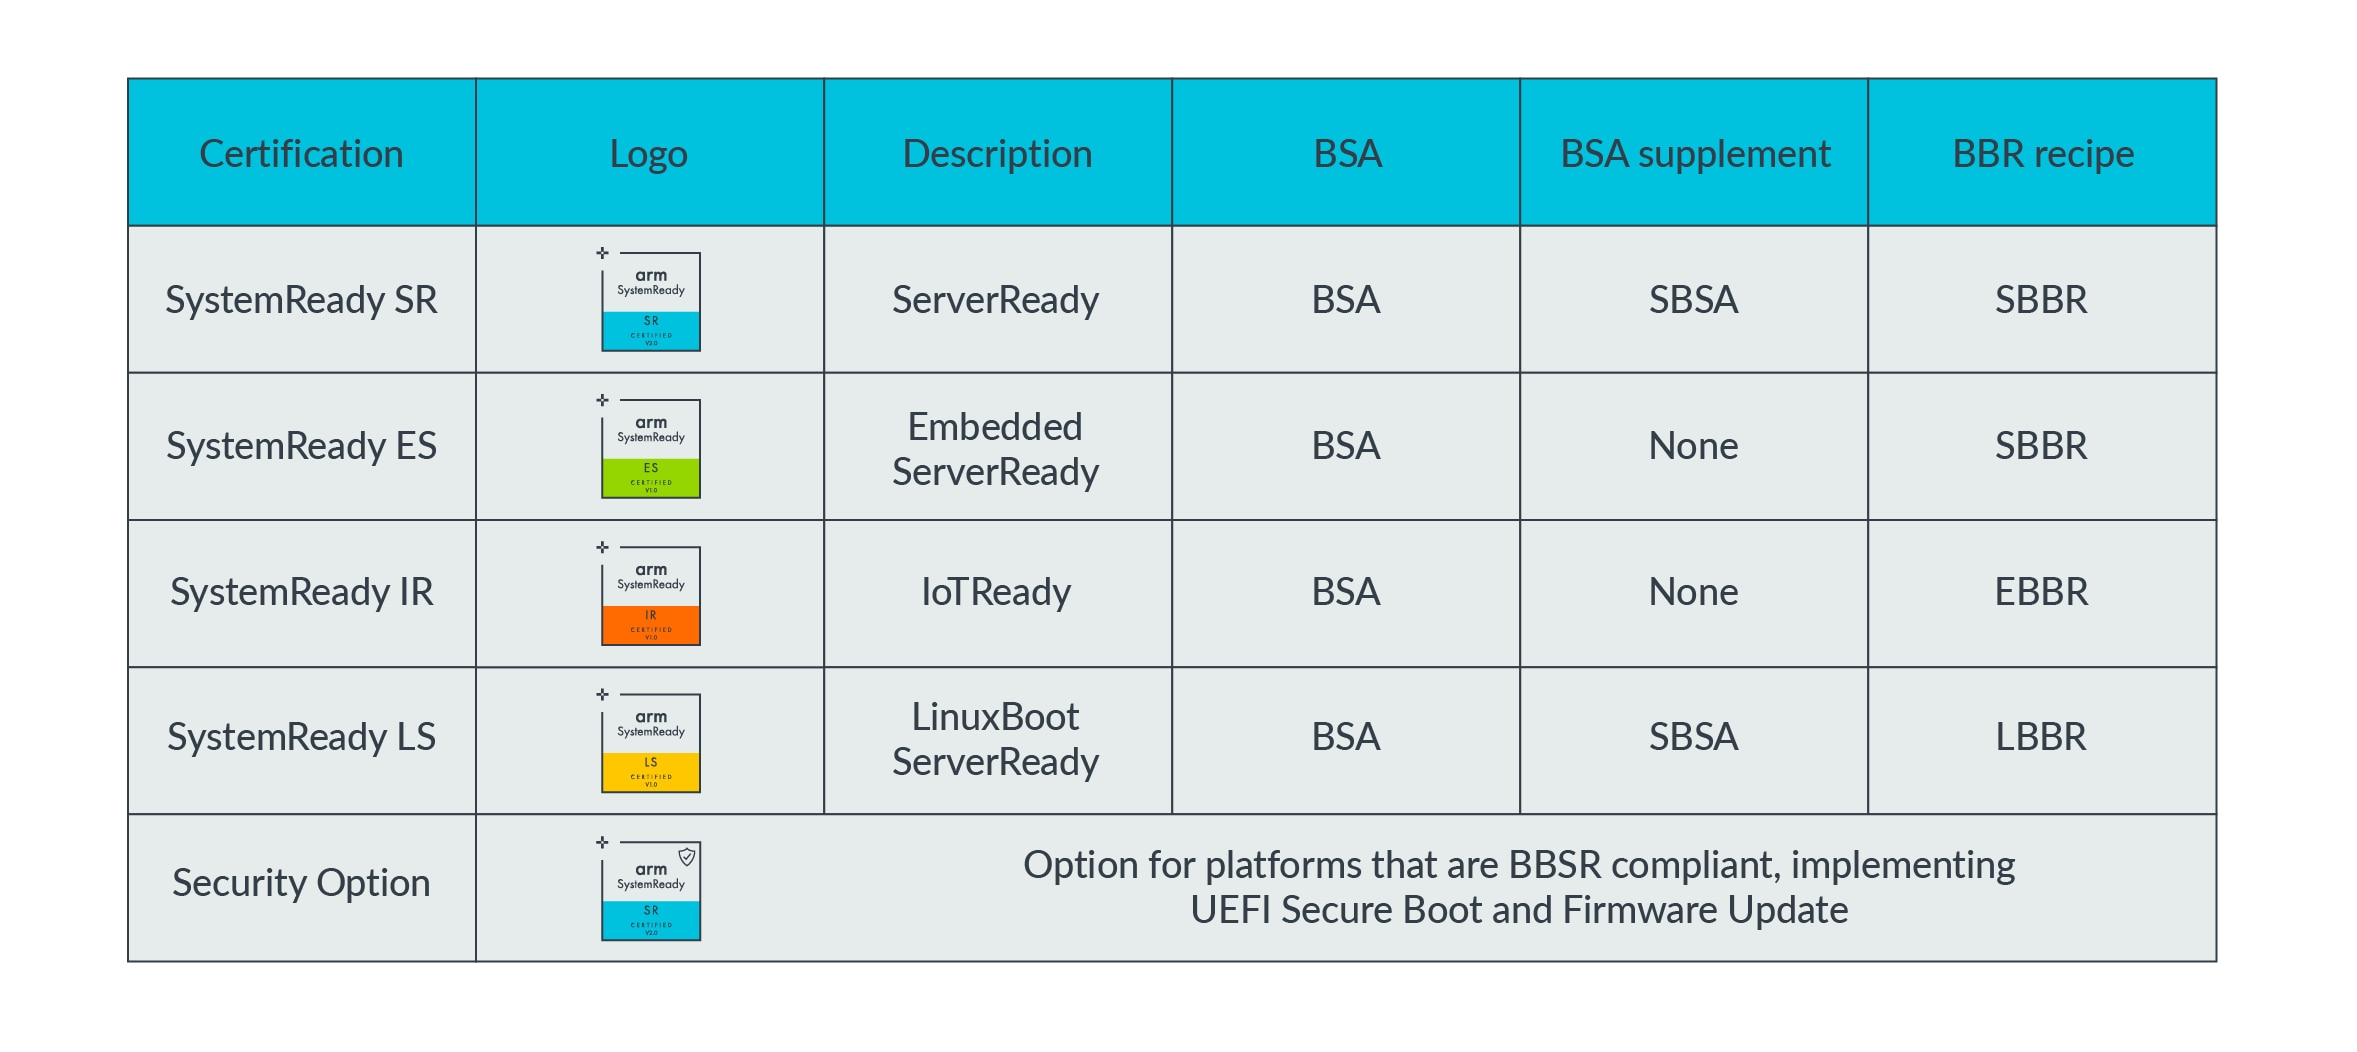 SystemReady specifications comparison